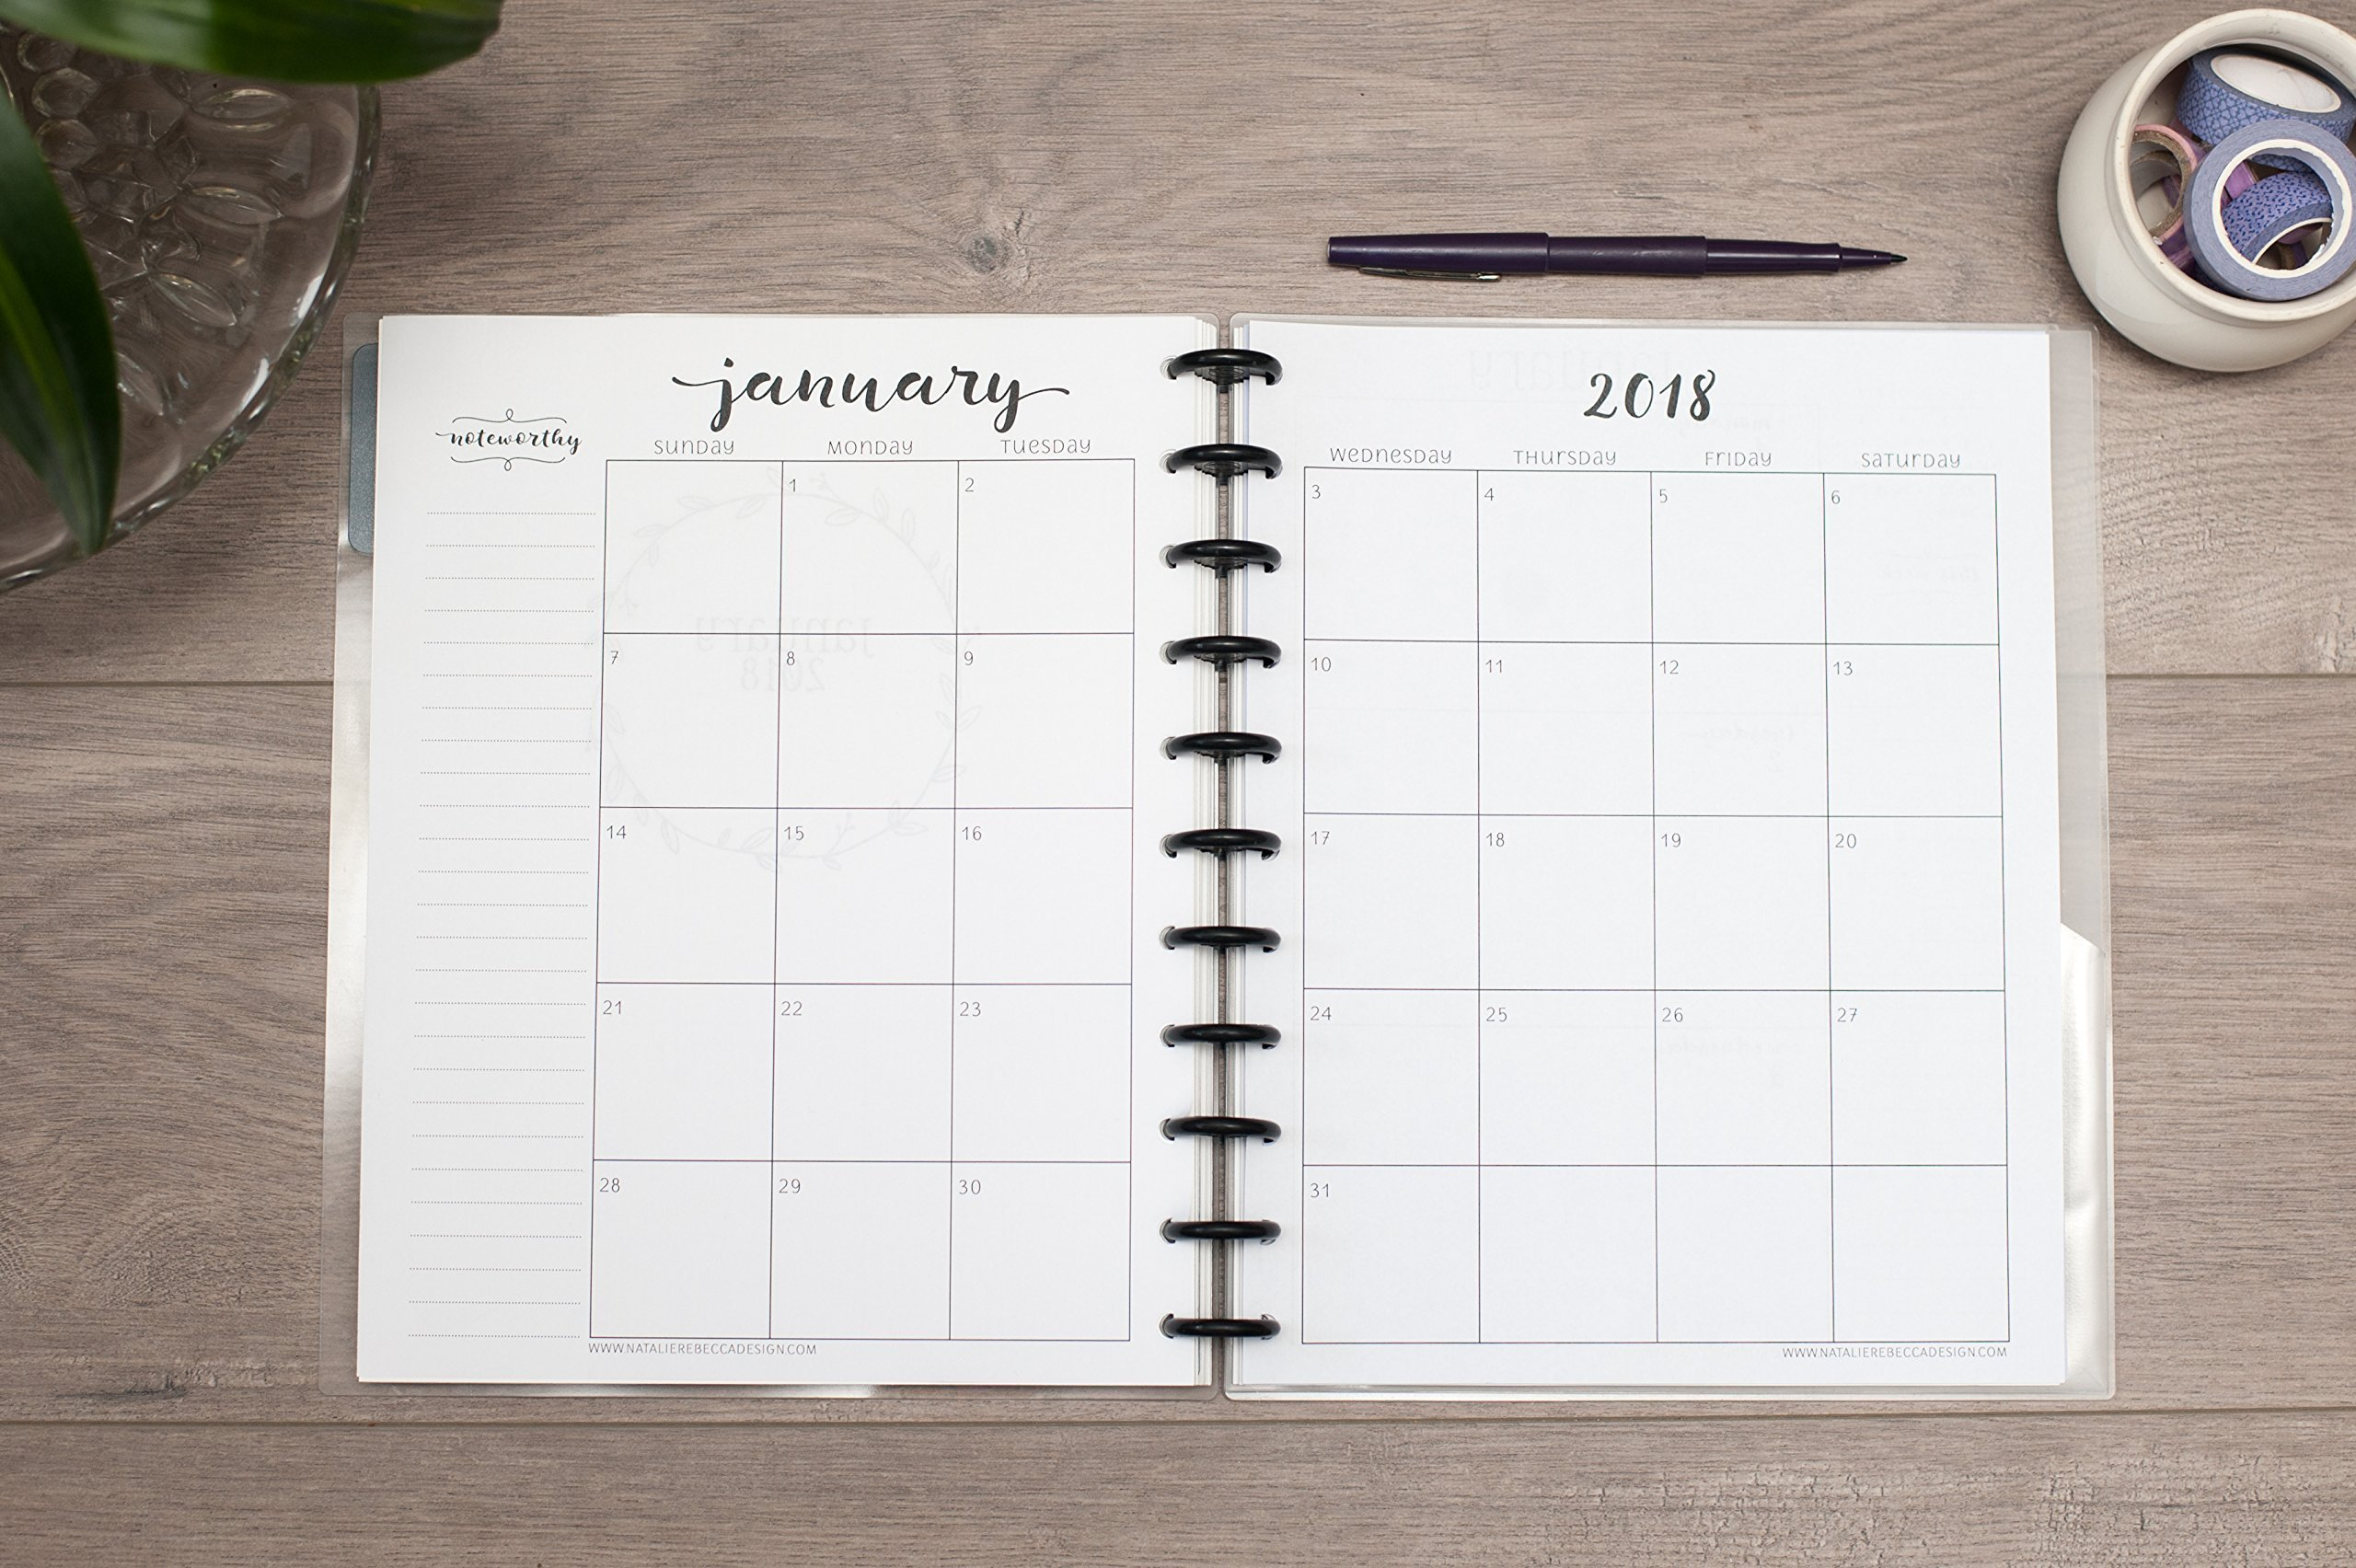 2019 Monthly Calendar for Disc-Bound Planners, Fits 11-Disc Circa Letter, Arc by Staples, TUL by Office Depot, Letter Size 8.5''x11'' (Notebook Not Included)